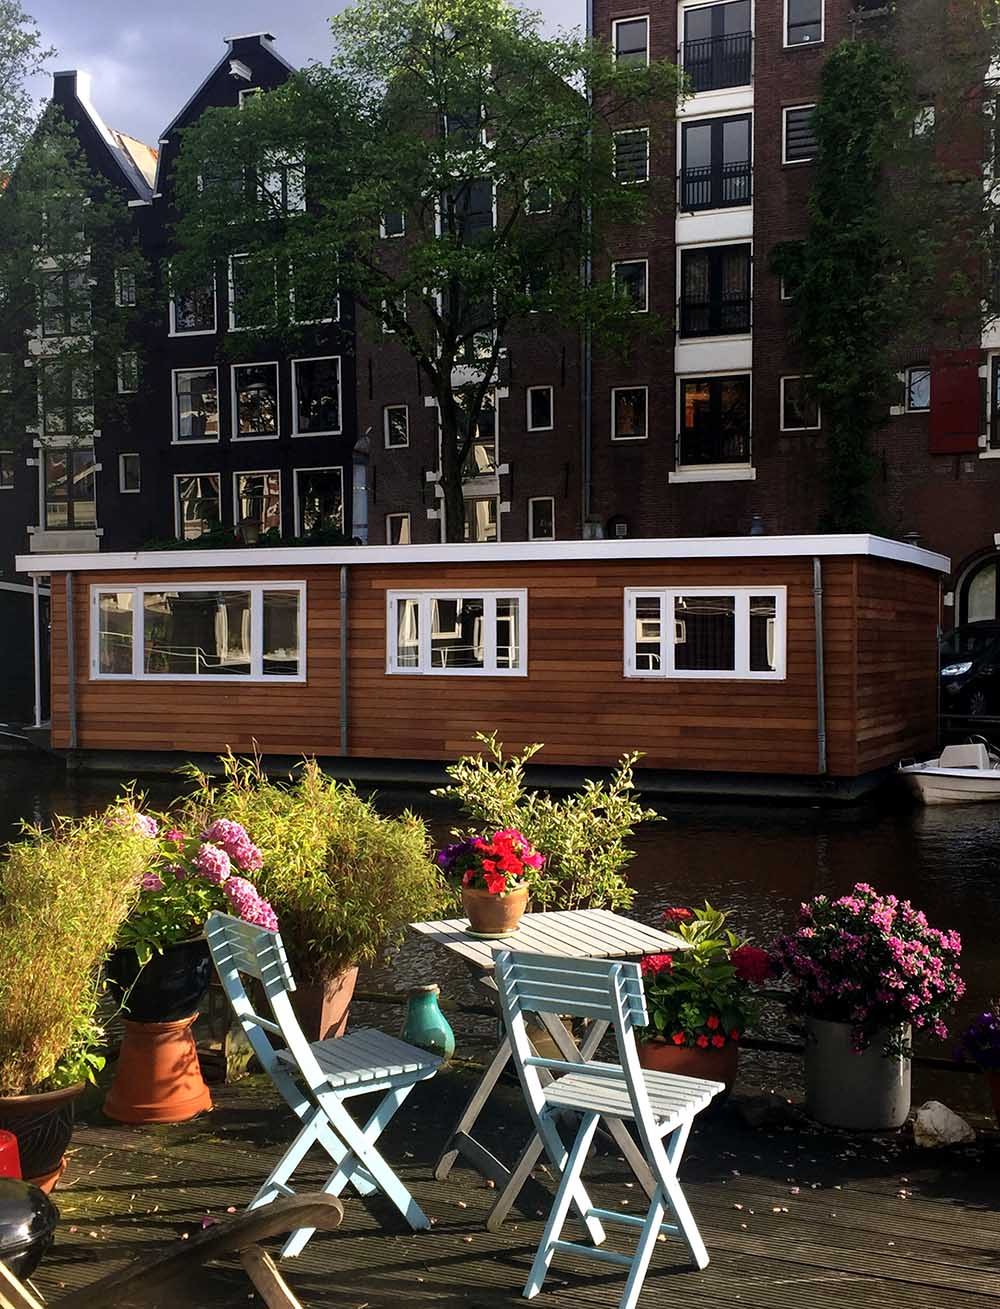 10 Cities to Live on a Houseboat - Floating Home Communities :: Amsterdam